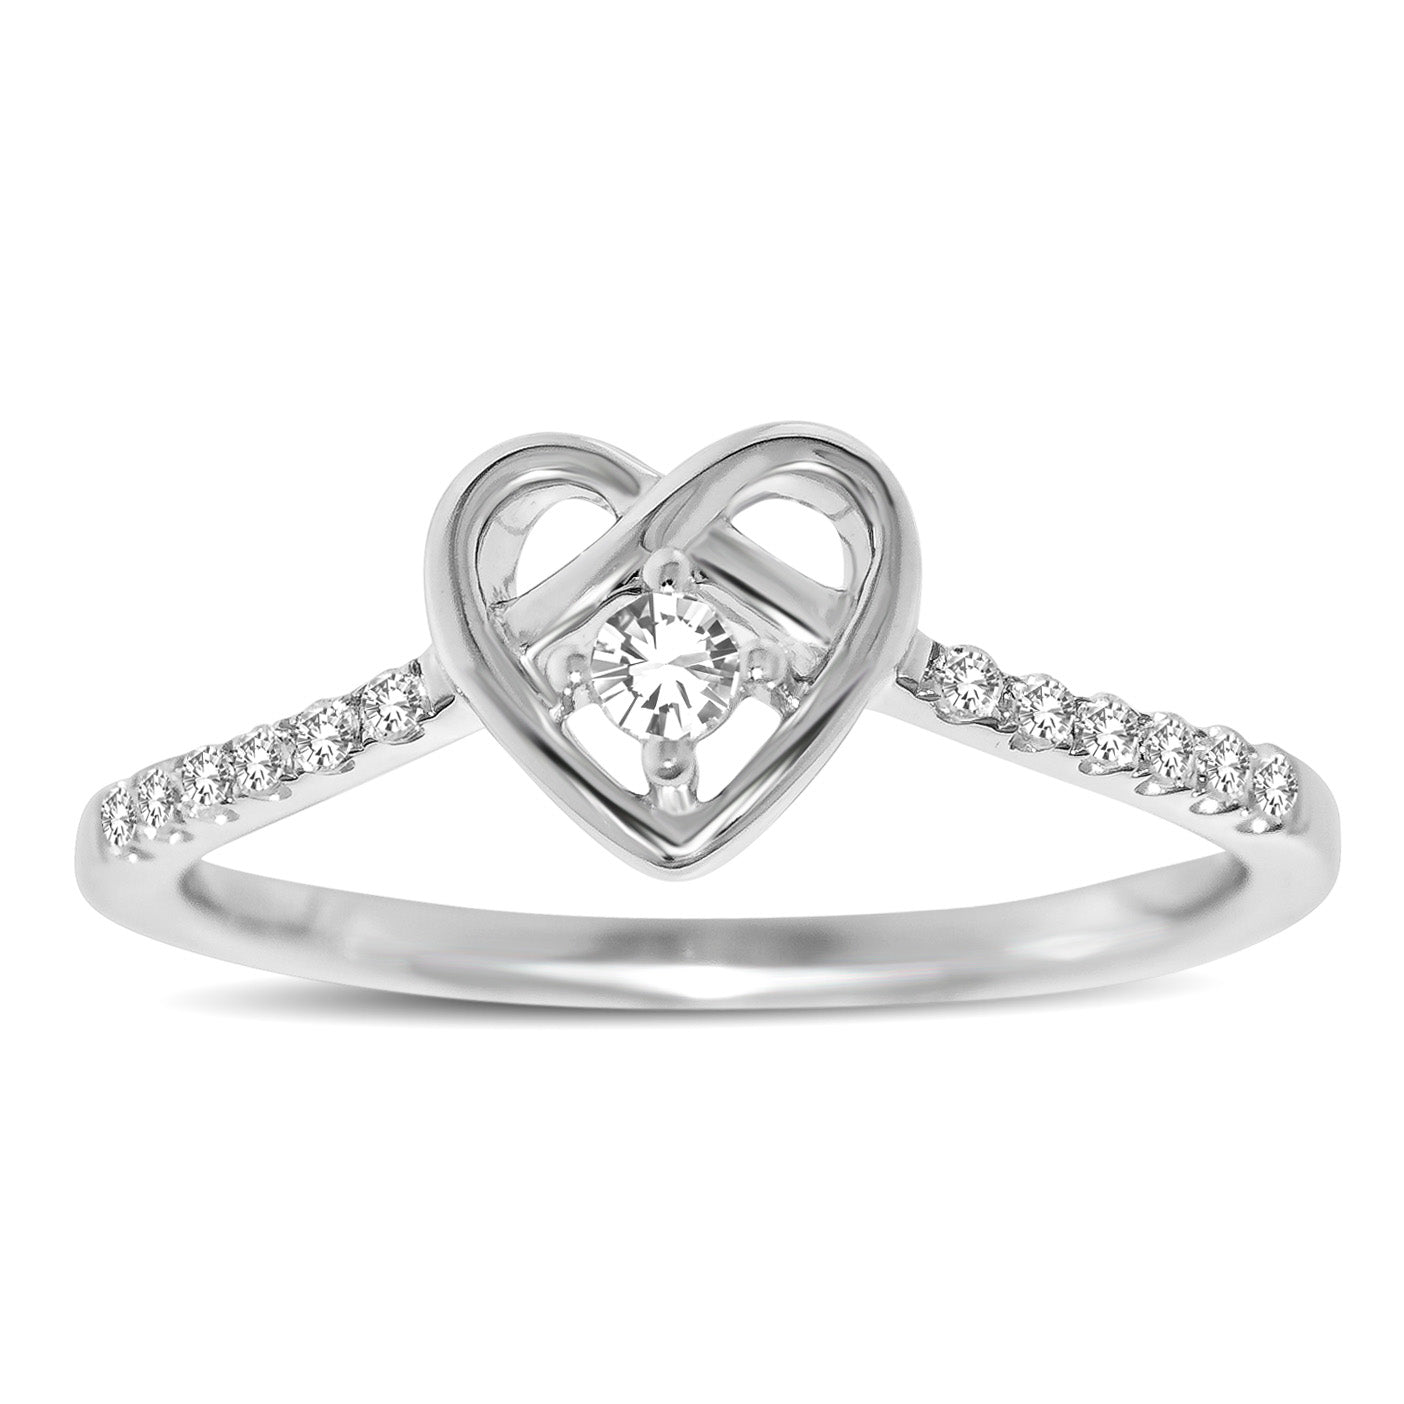 10K White Gold 1/5 Ctw Diamond Heart Ring